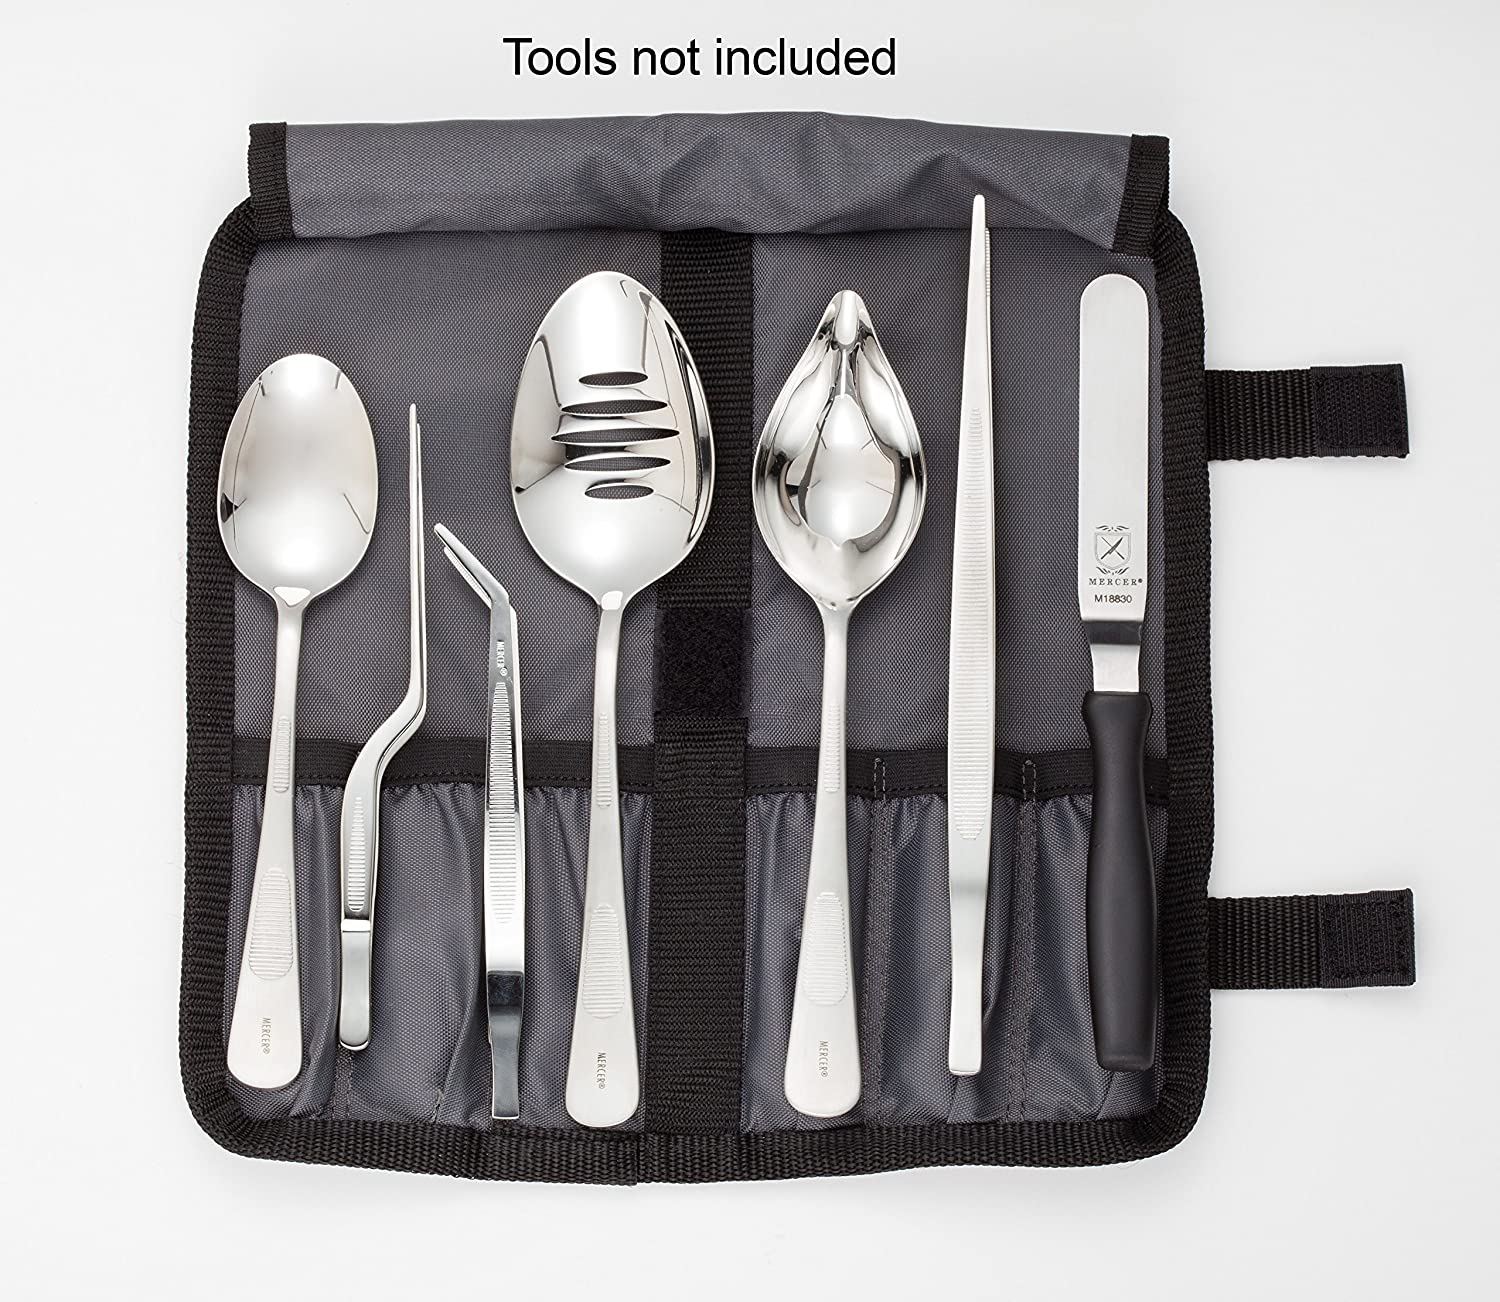 Mercer Culinary Deluke Plating Tongs Kit Stainless Steel 10 Pieces 12x12x3 cm